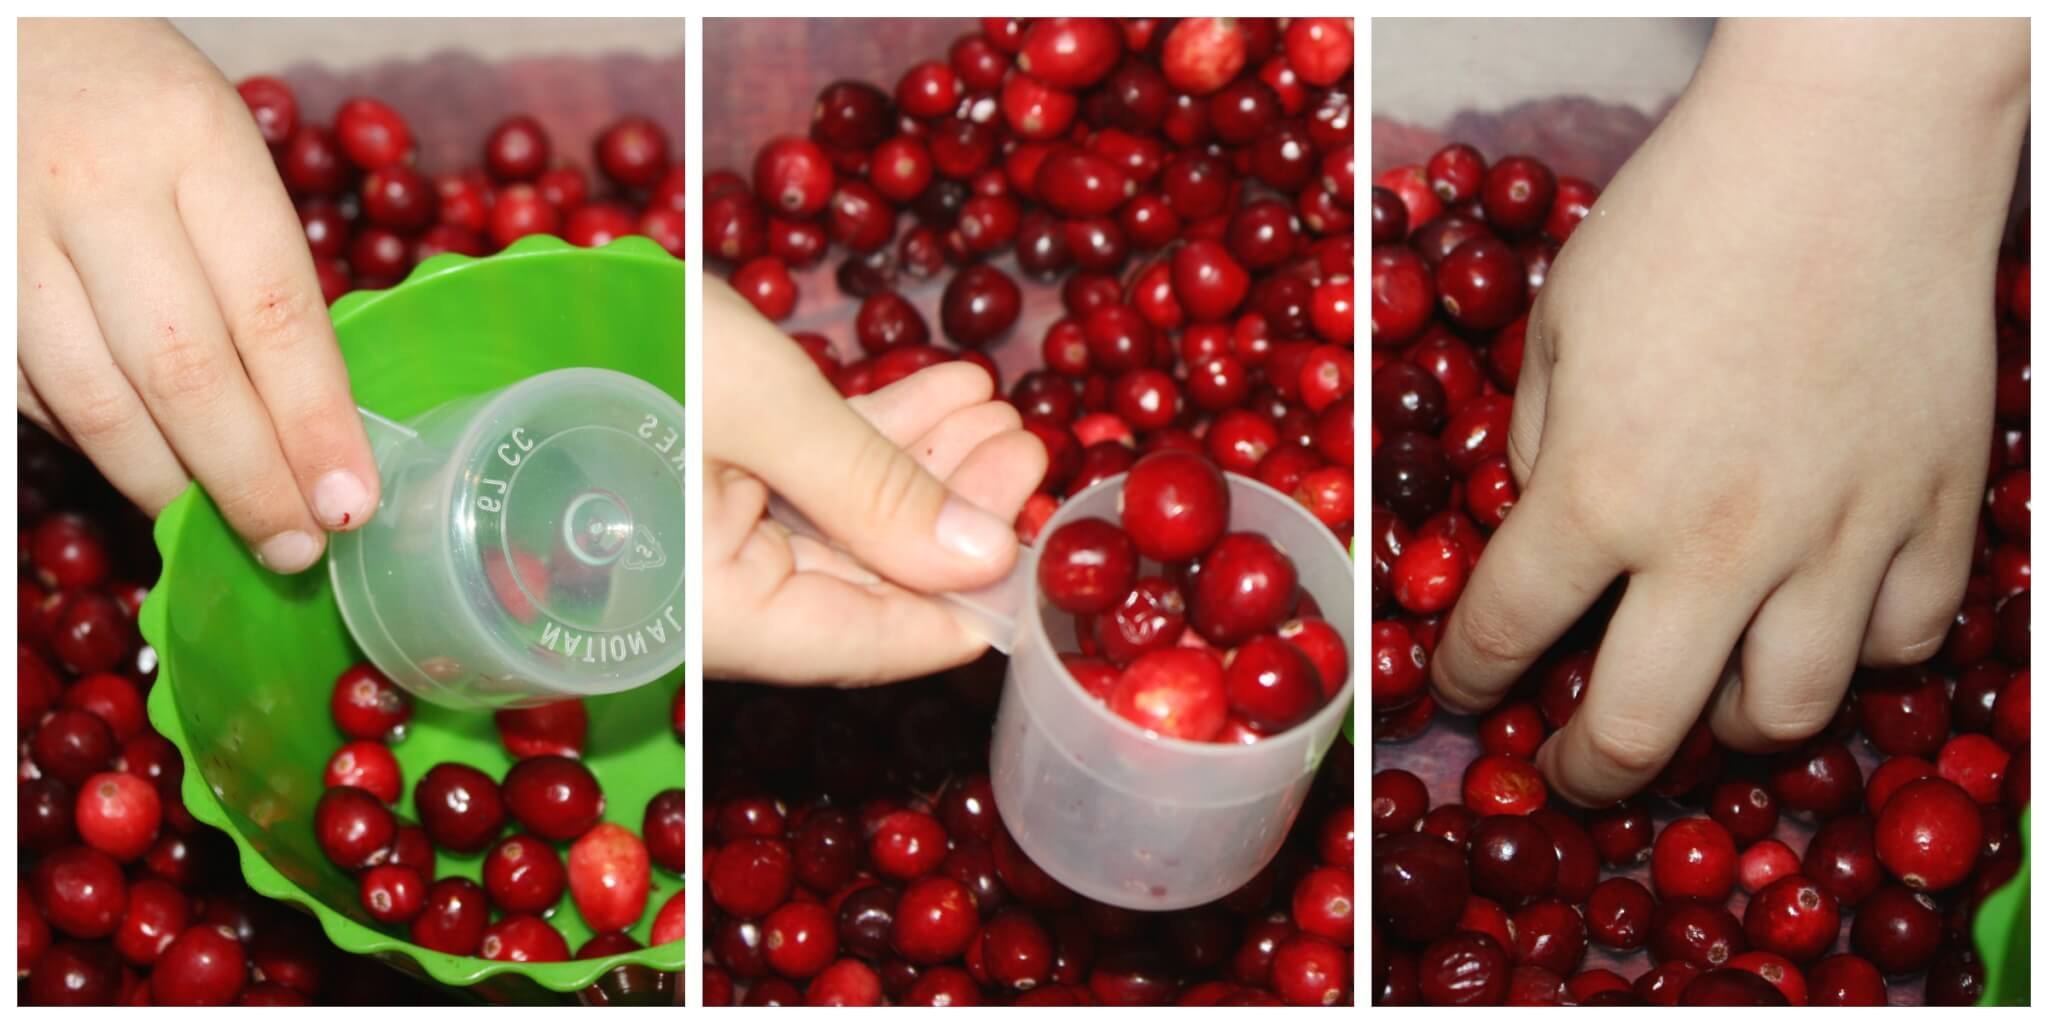 Fine Motor Skills With Cranberries